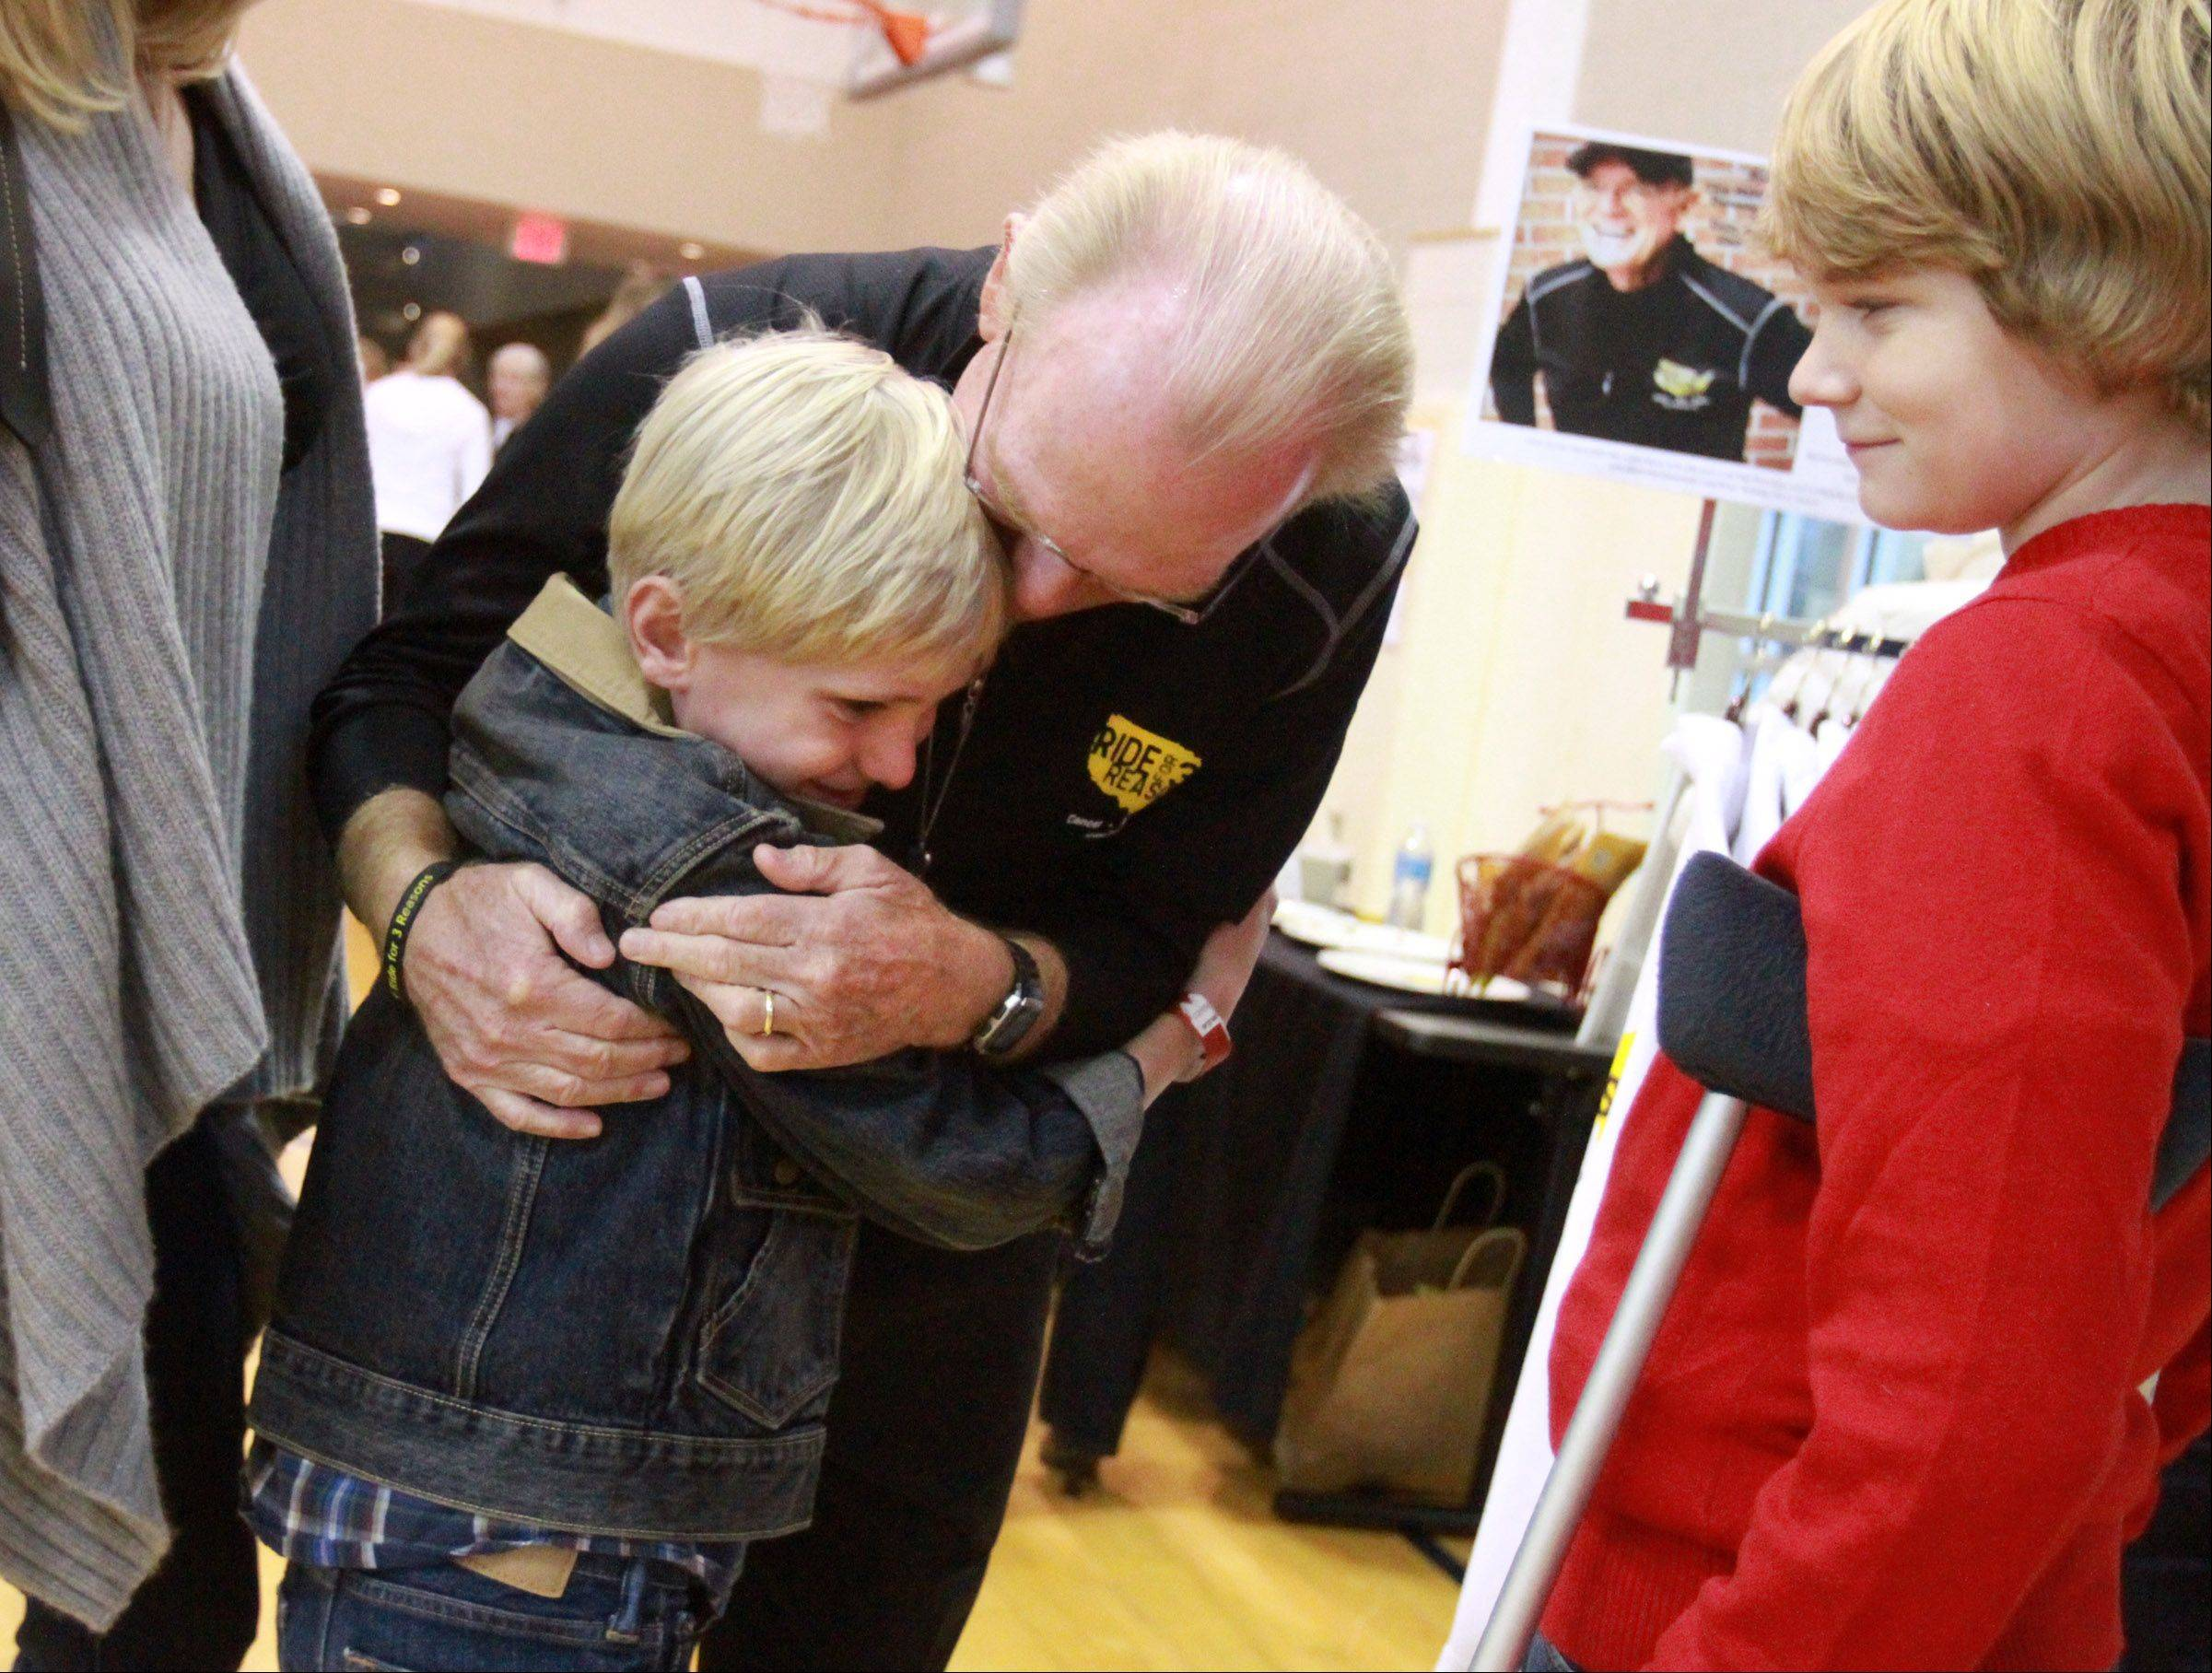 Barrington bicyclist Bob Lee, 70 gets a hug from family friend Parker Henry, 8, of Barrington, as Parker's brother Spencer, 13, looks on during a welcome home reception Saturday.